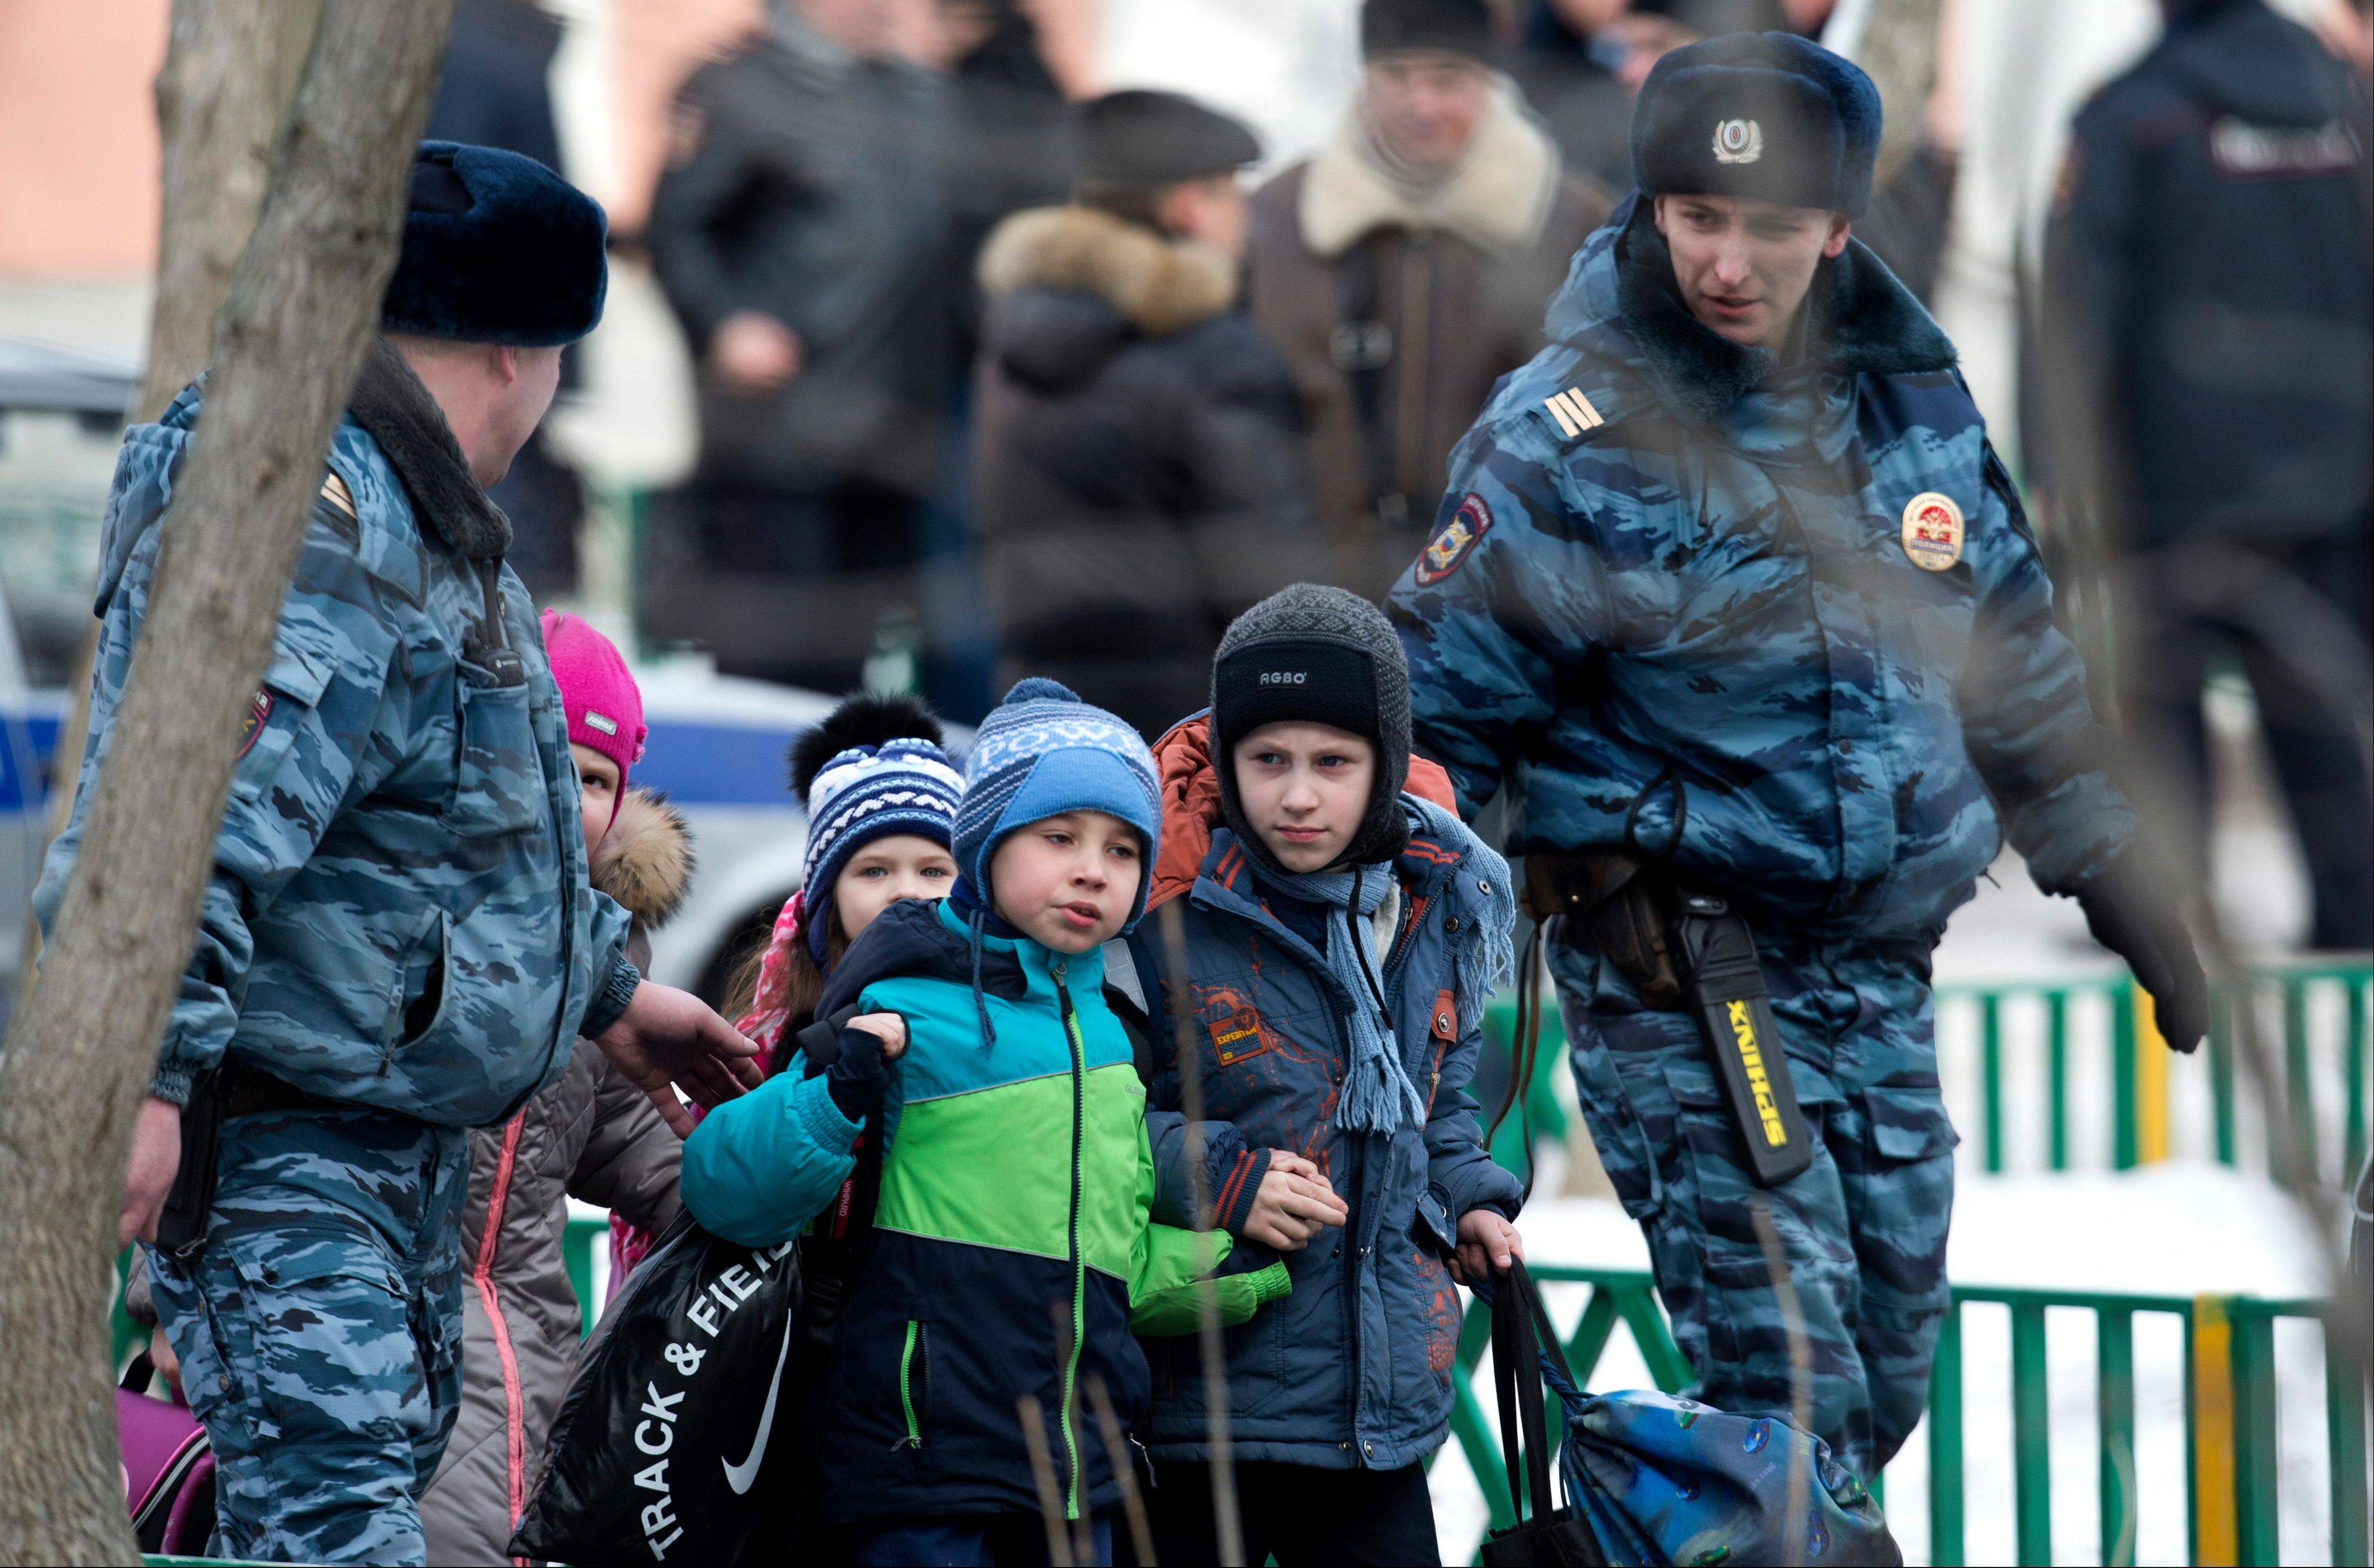 Police officers evacuate children from a Moscow school on Monday, Feb. 3, 2014. An armed teenager burst into his Moscow school on Monday and killed a teacher and policeman before being taken into custody, investigators said.